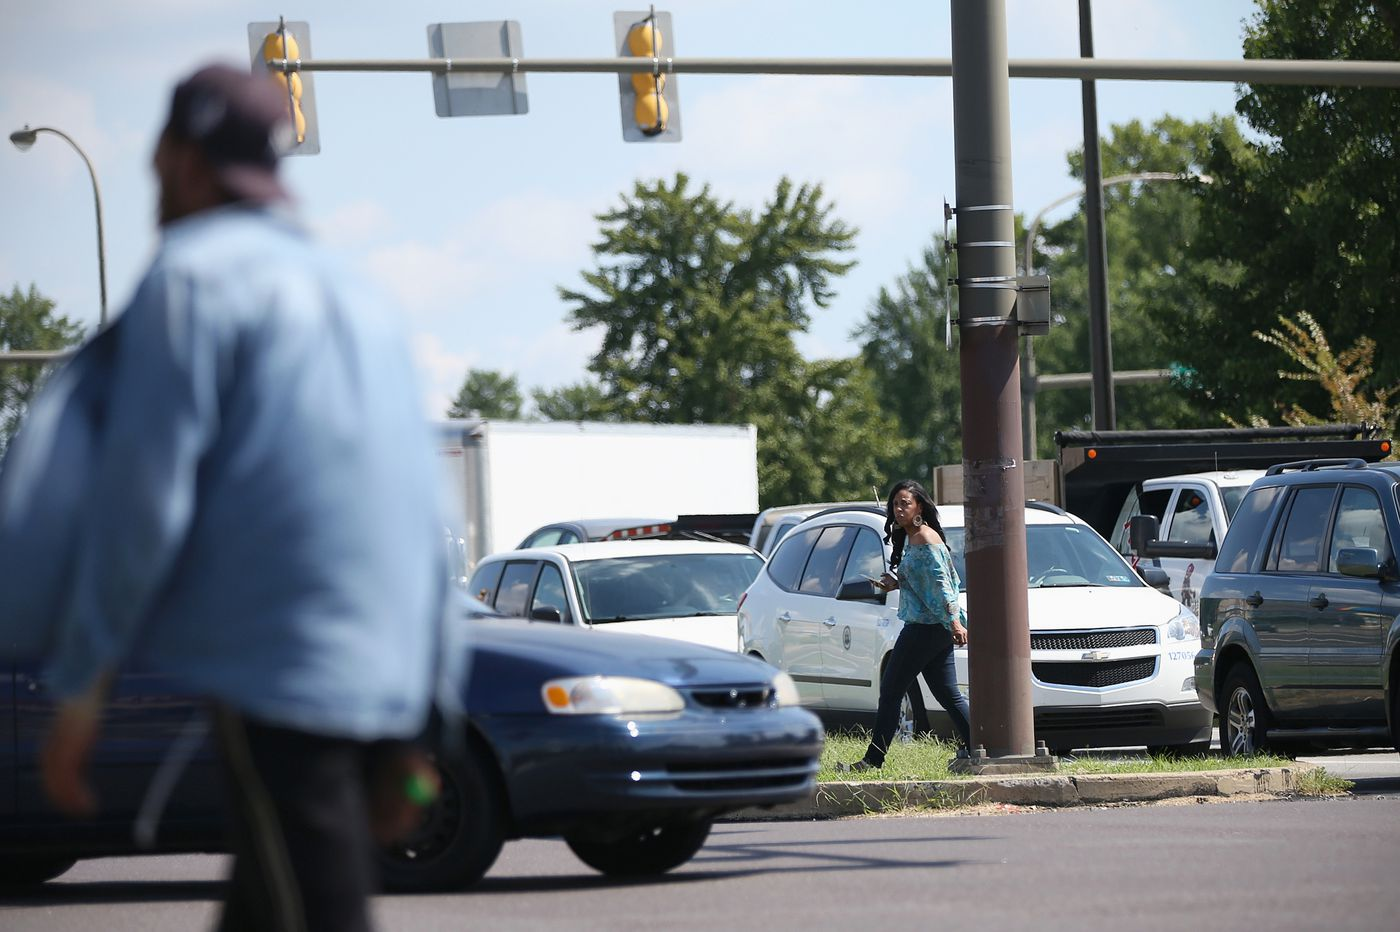 With a weekend fatality, Roosevelt Boulevard on pace for most deadly year in recent history